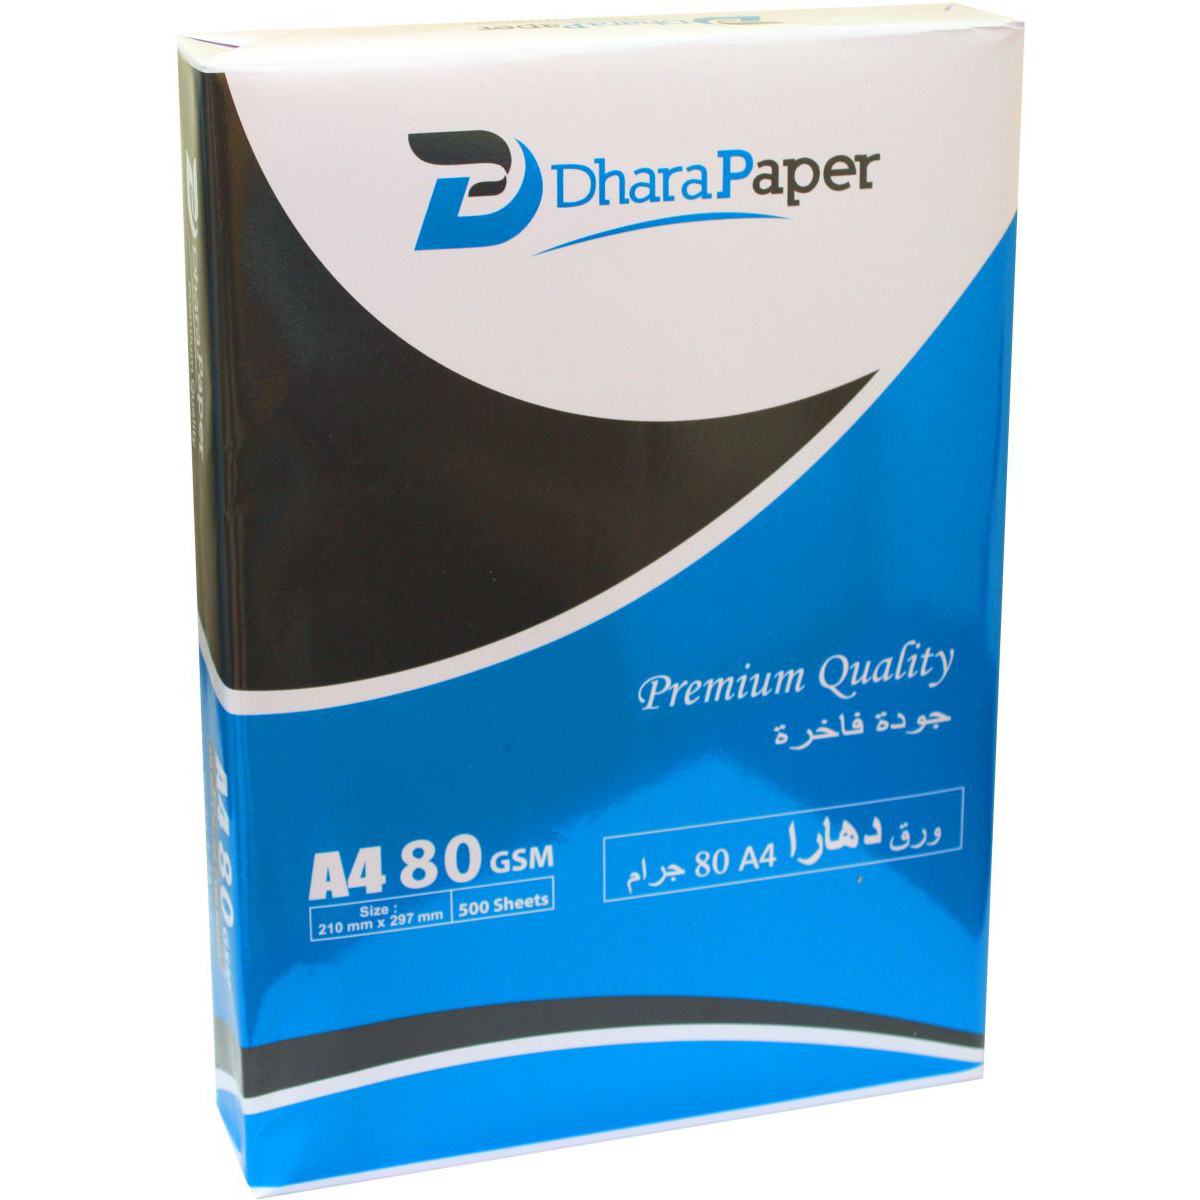 Dhara Photo Copy Paper 80gsm - A4 (rm)